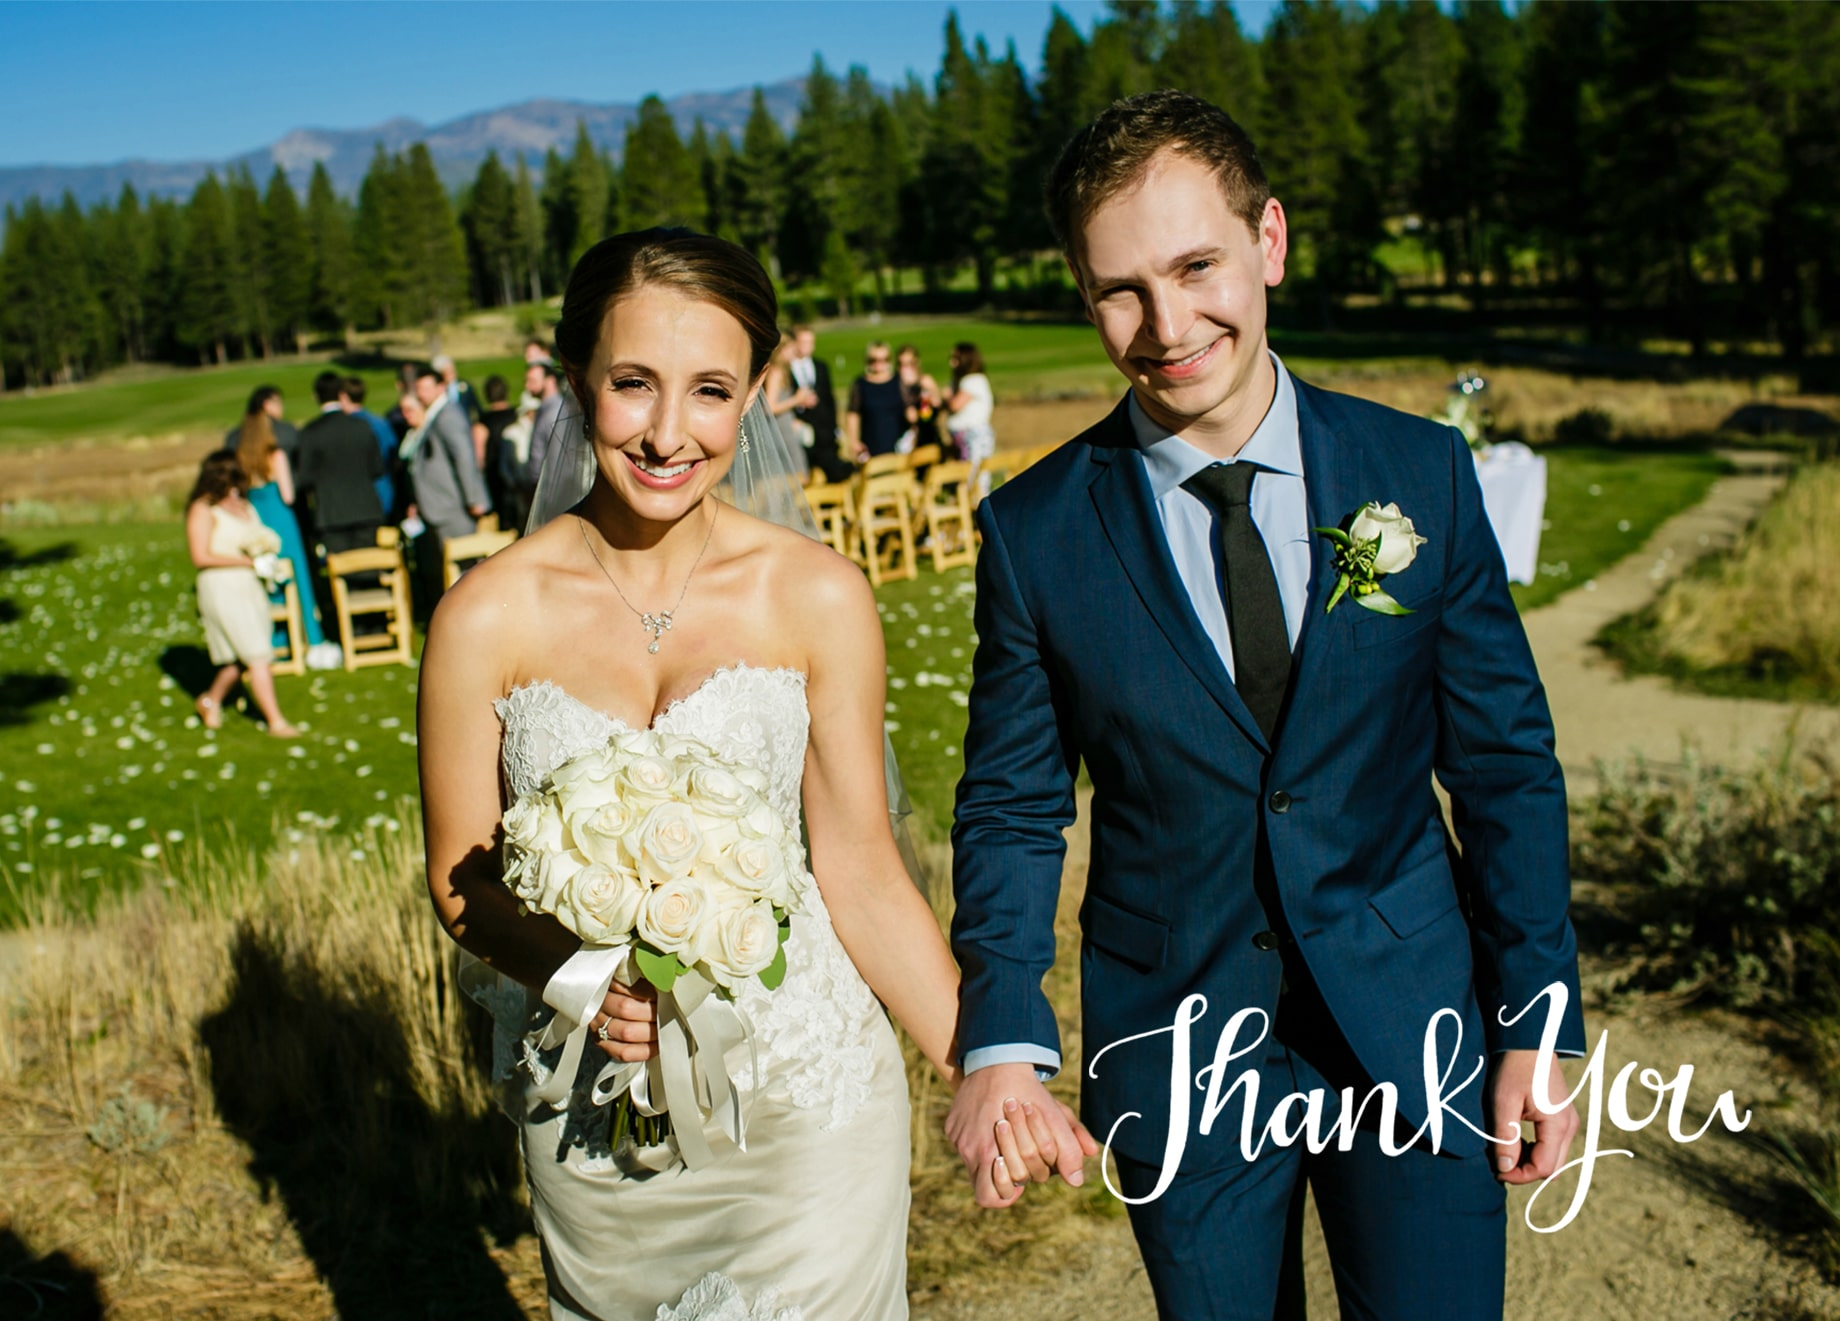 Thank you cards design idea for wedding photos